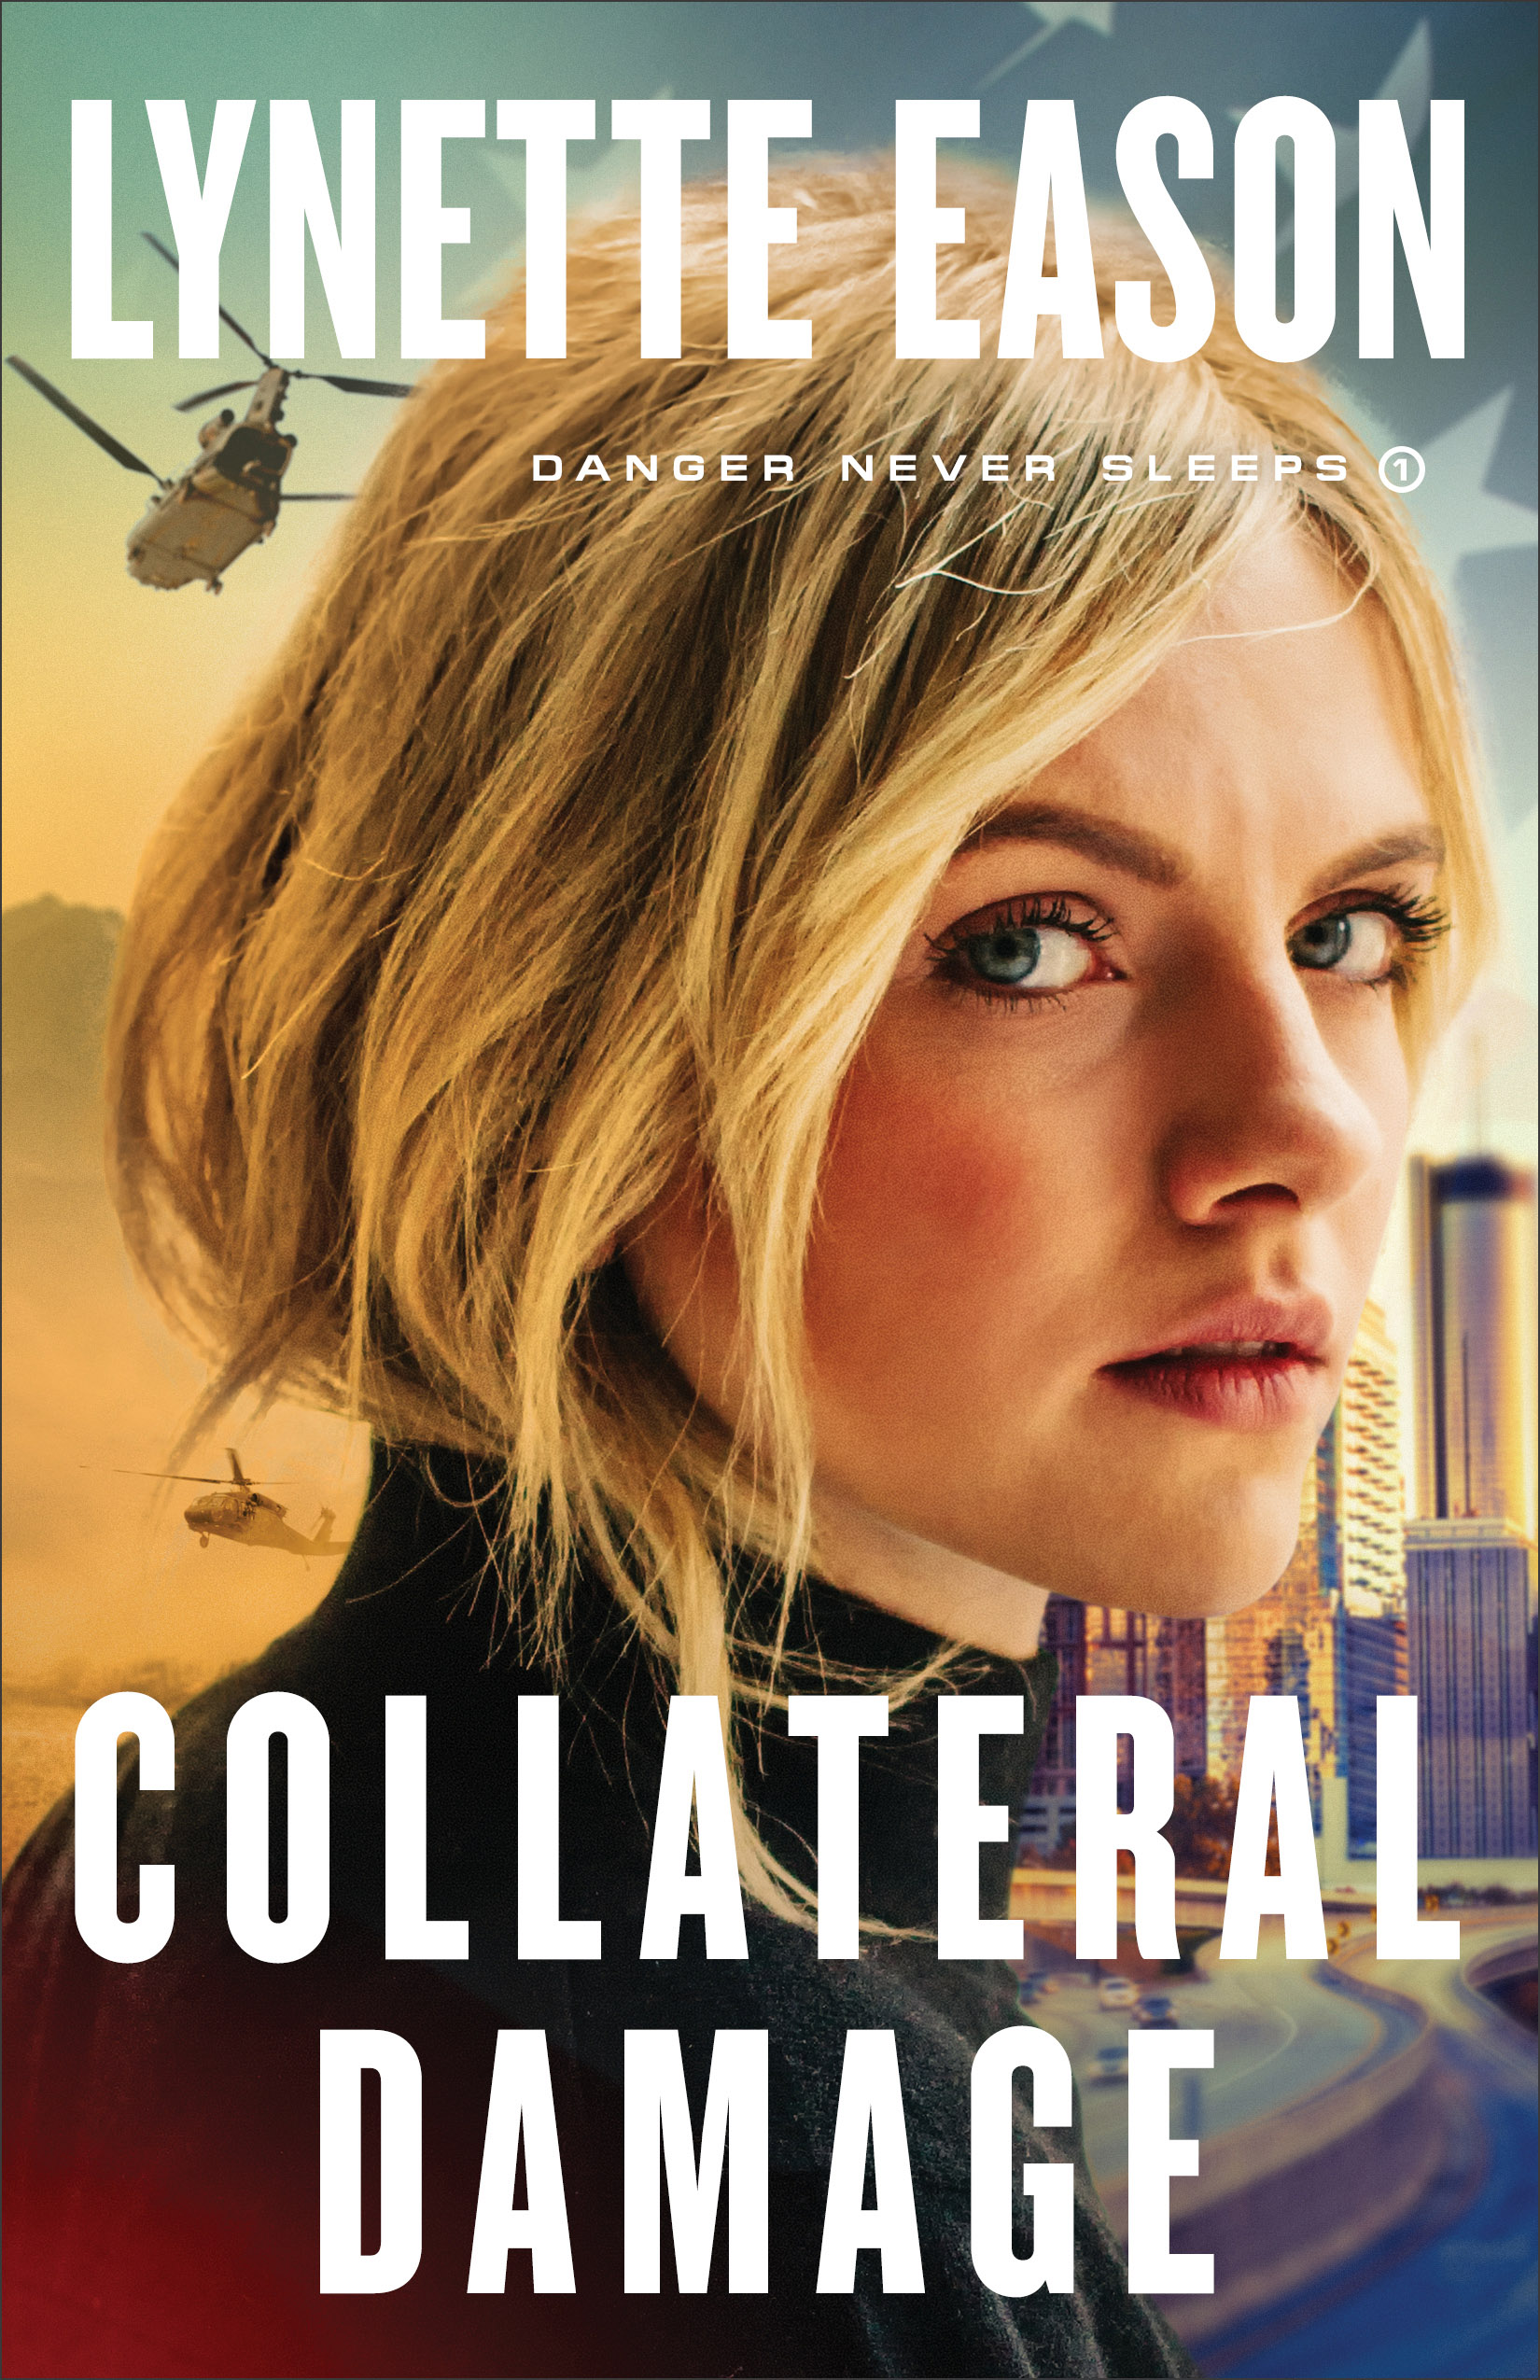 Book review of Collateral Damage by Lynette Eason (Revell) by papertapepins